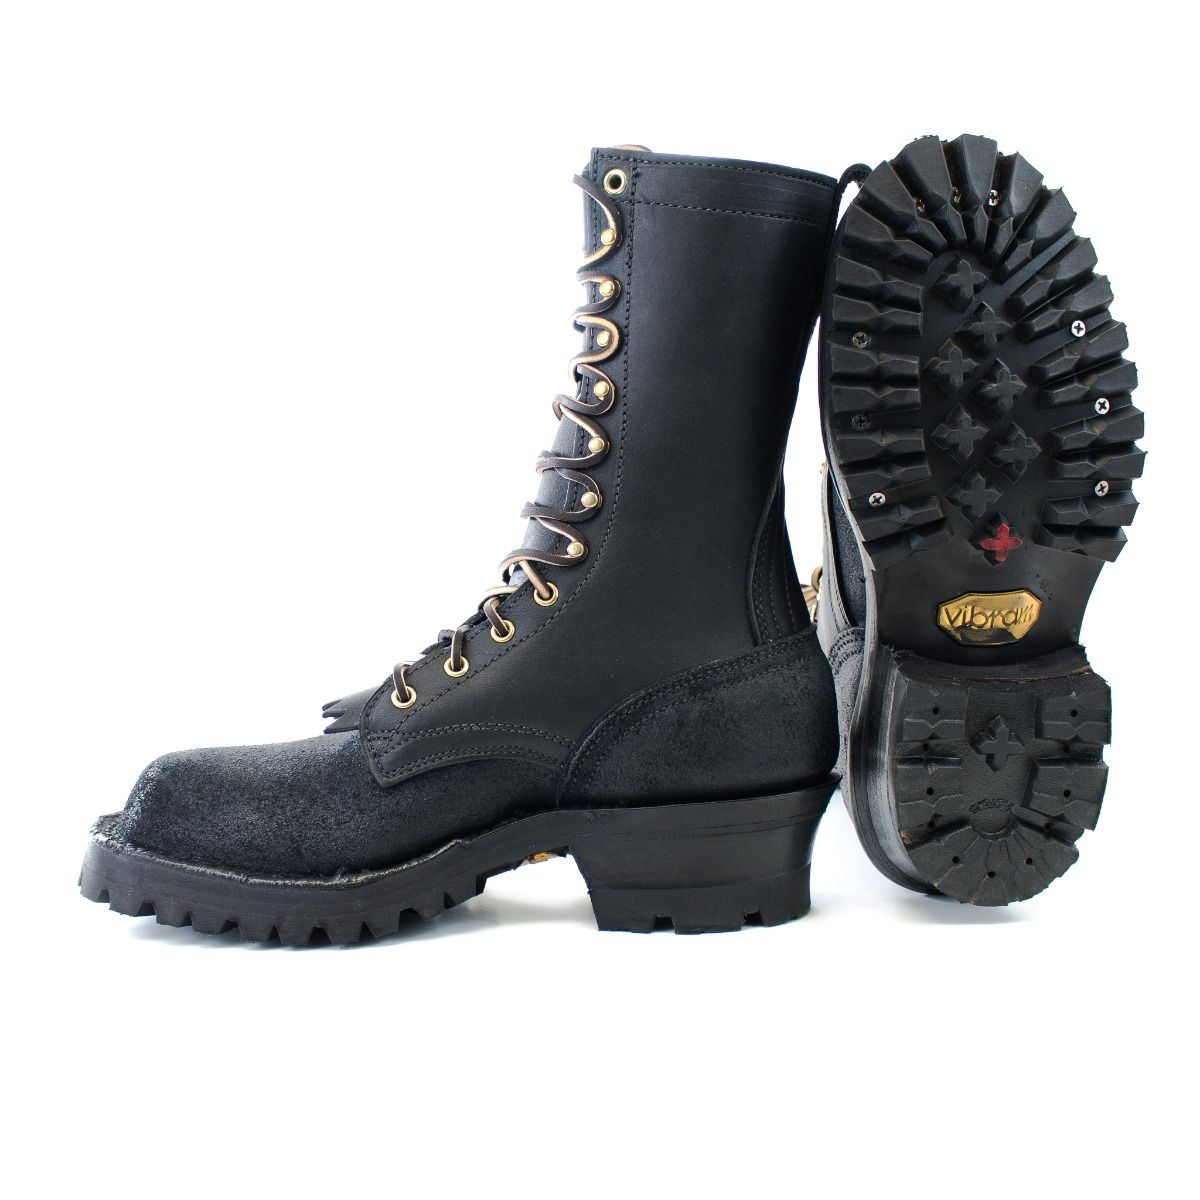 Nicks Classic High Arch Boots - Buy